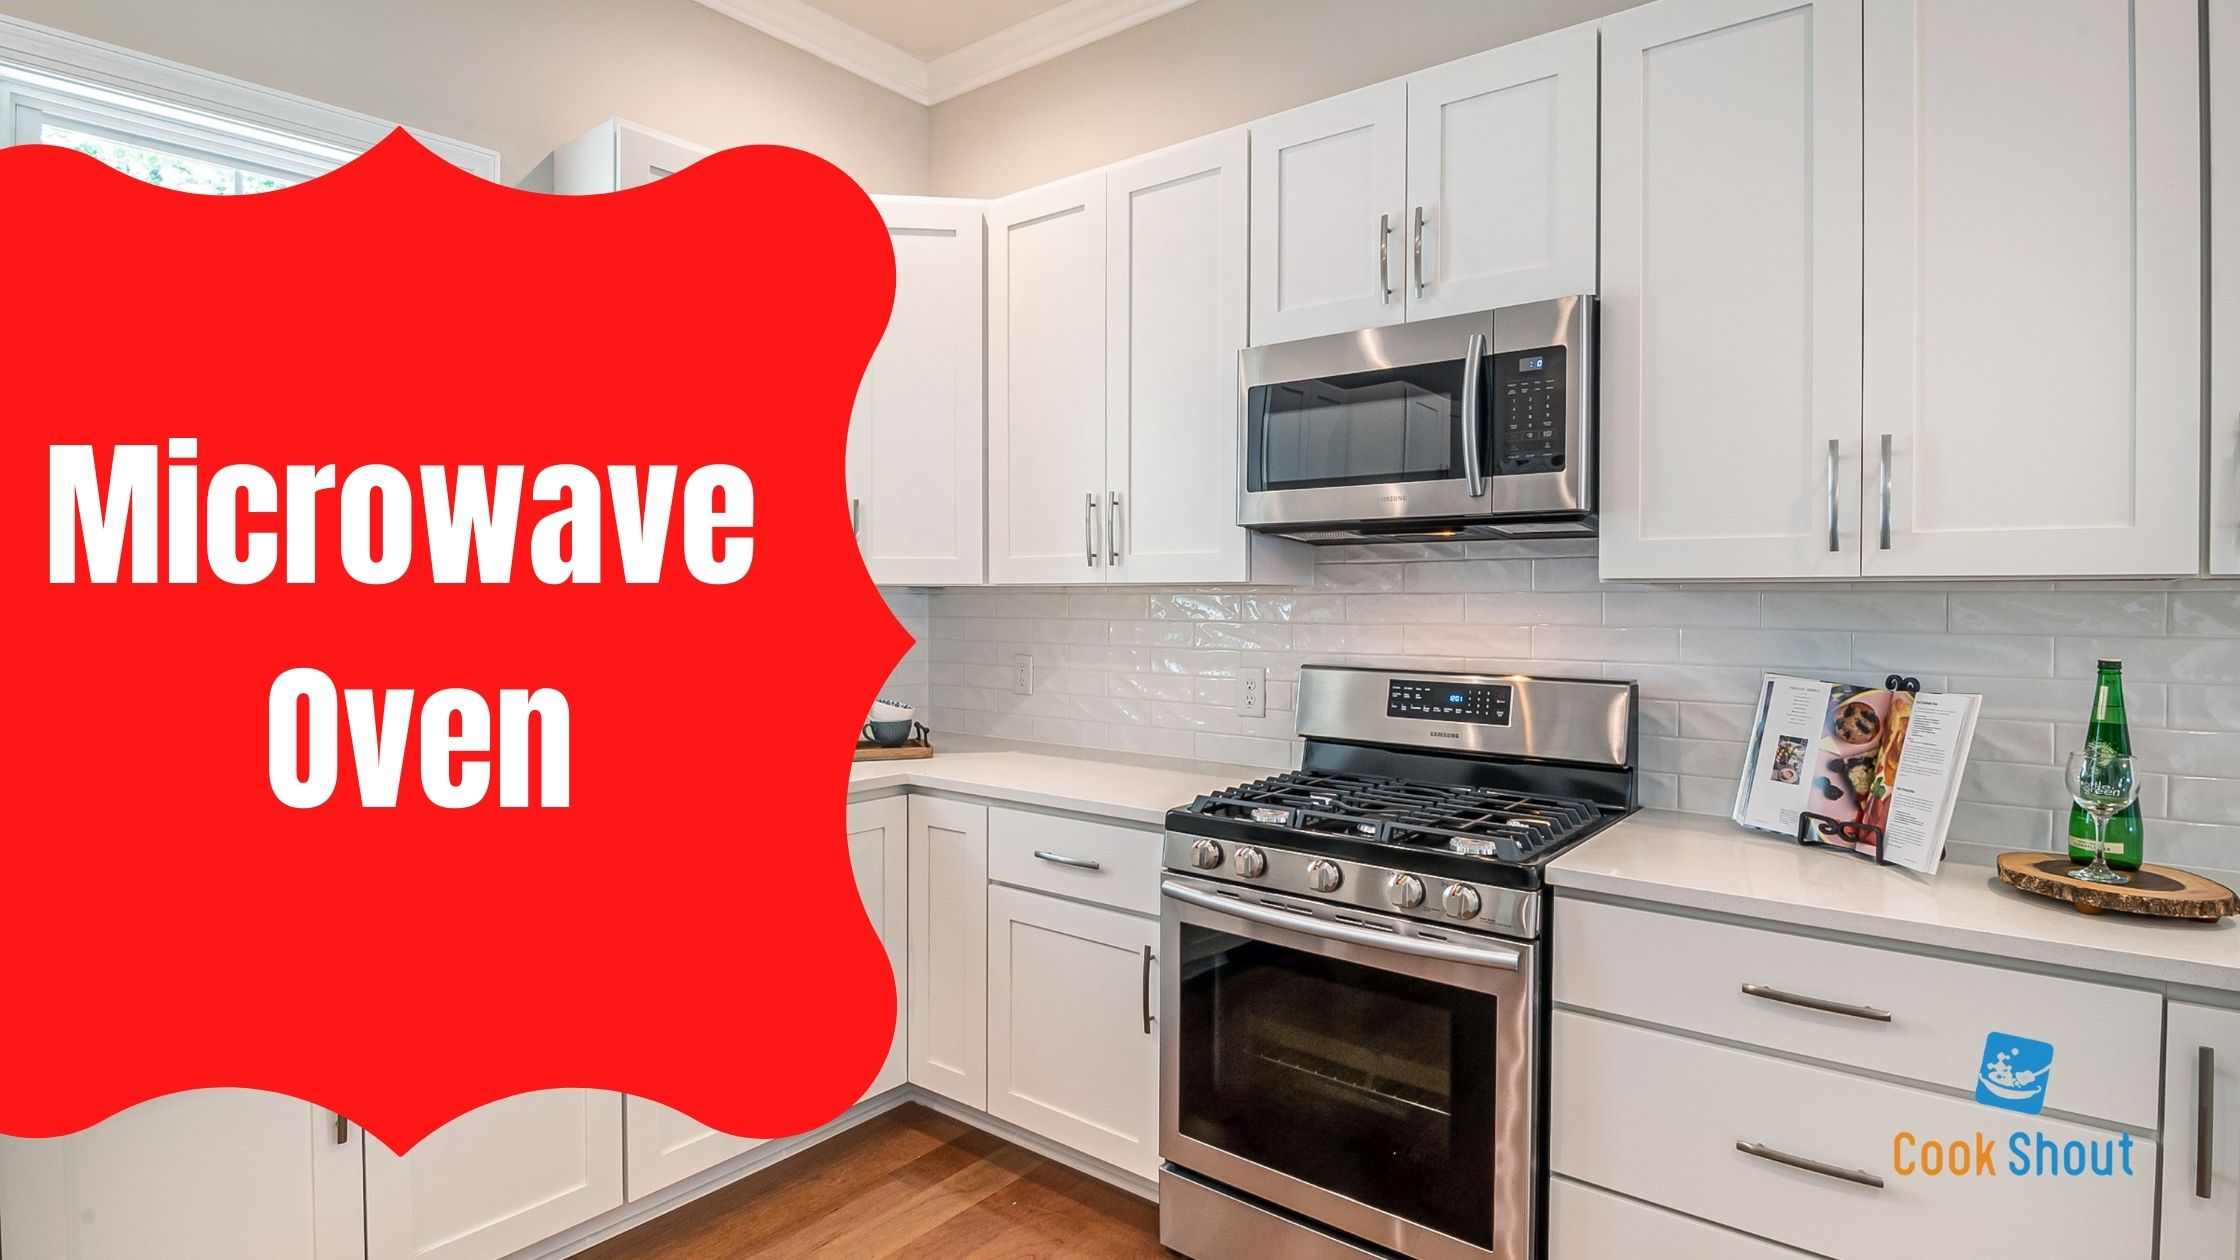 What is a Microwave Oven